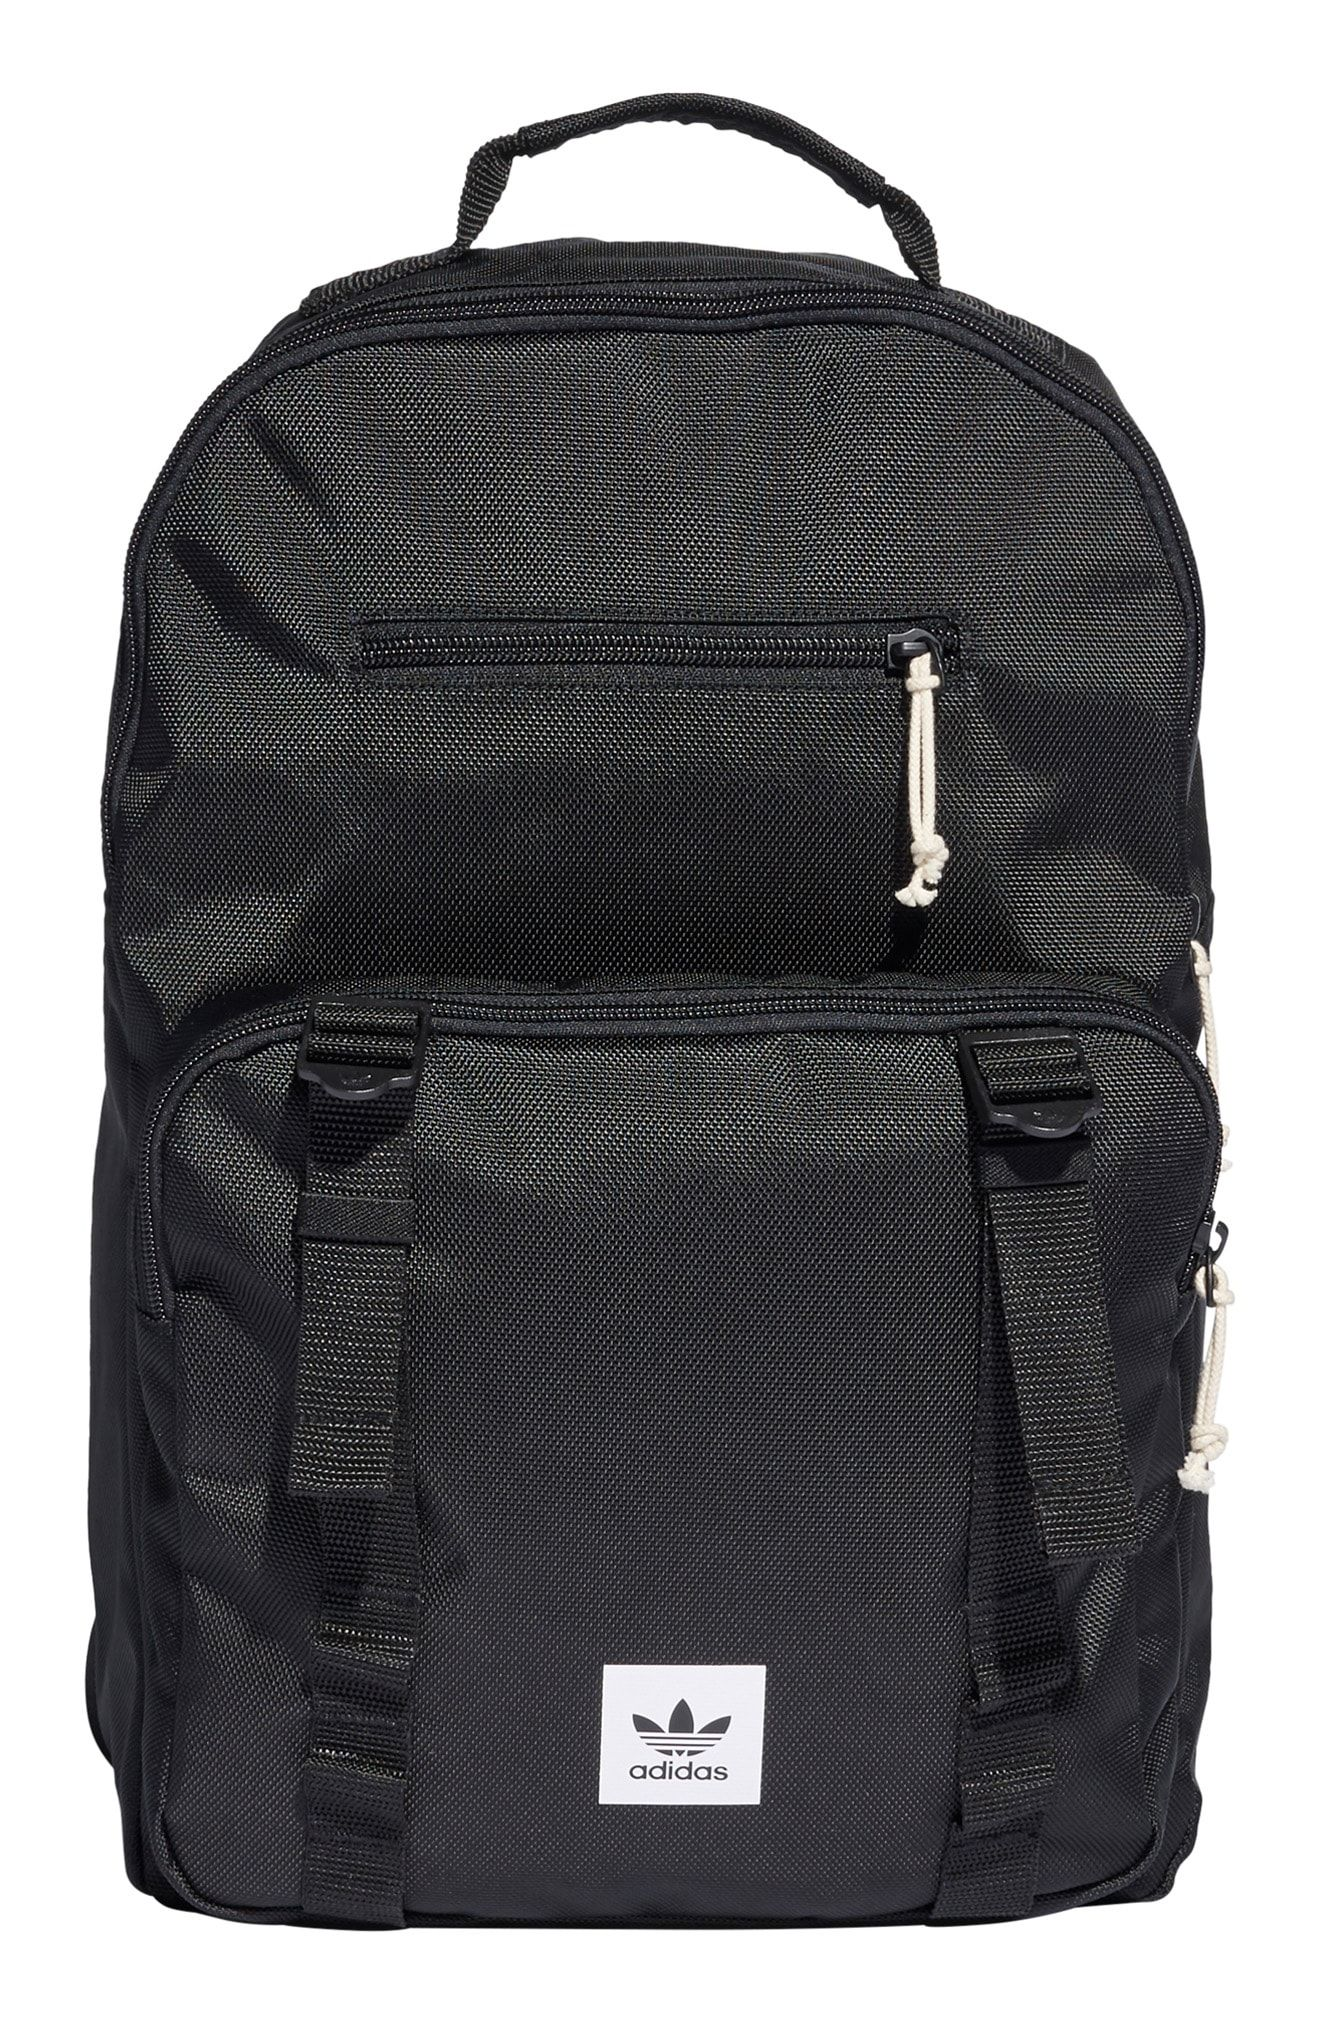 Adidas Originals Atric Backpack Black Adidasoriginals Bags